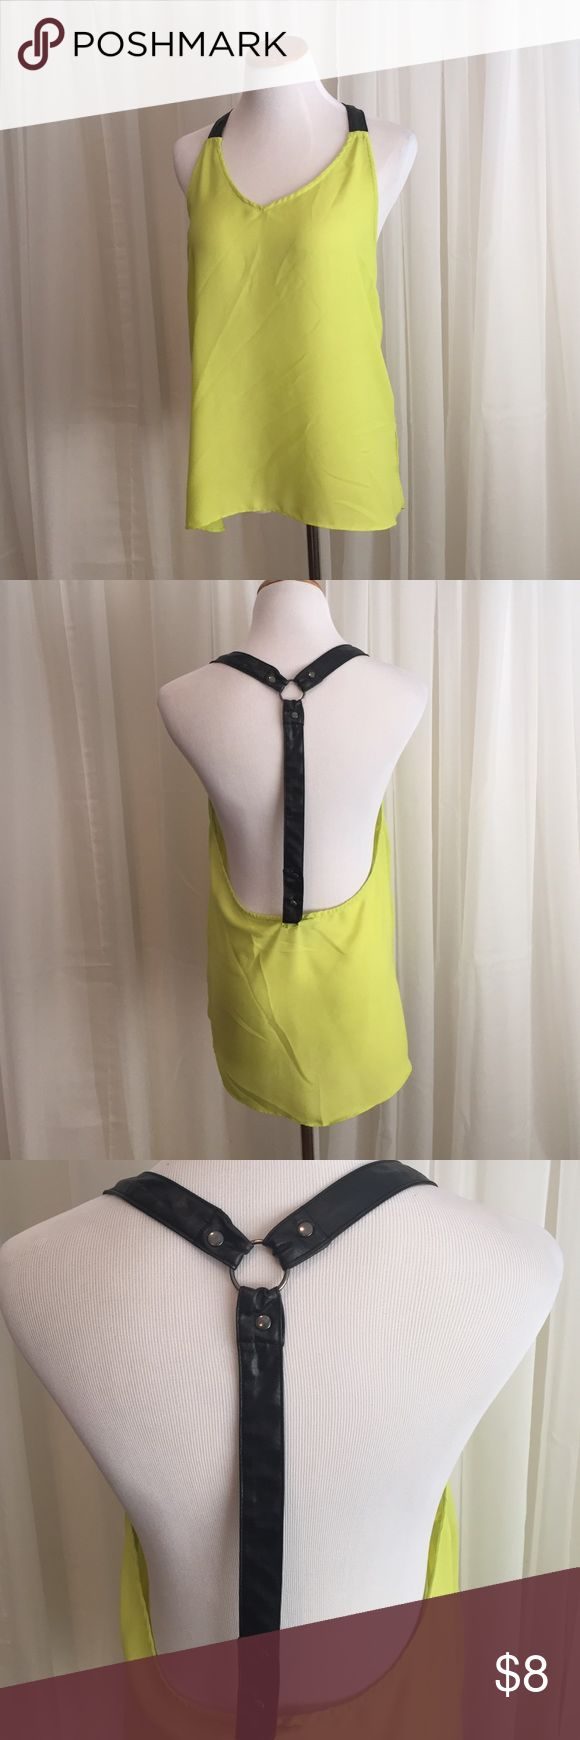 Neon yellow top with faux leather racer back How adorable is this with a little lace bralette under? The racer back is faux leather and the material is a soft sheer neon yellow. Joyce Tops Tank Tops